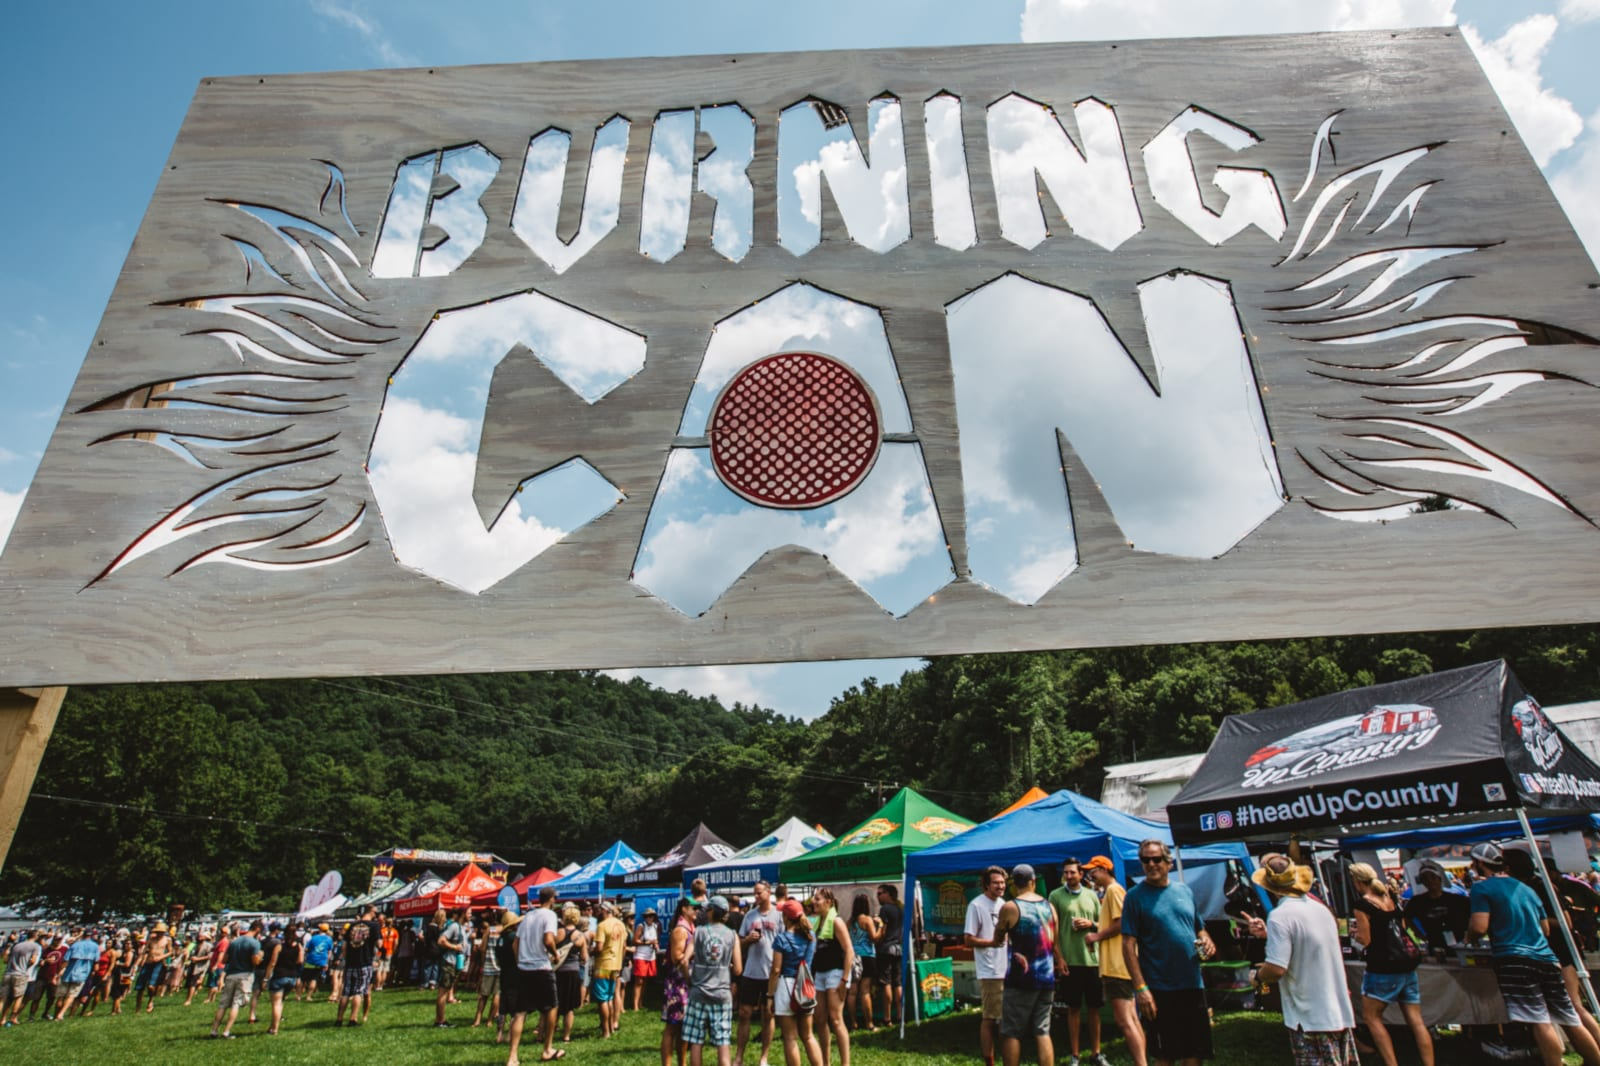 Burning Can Festival